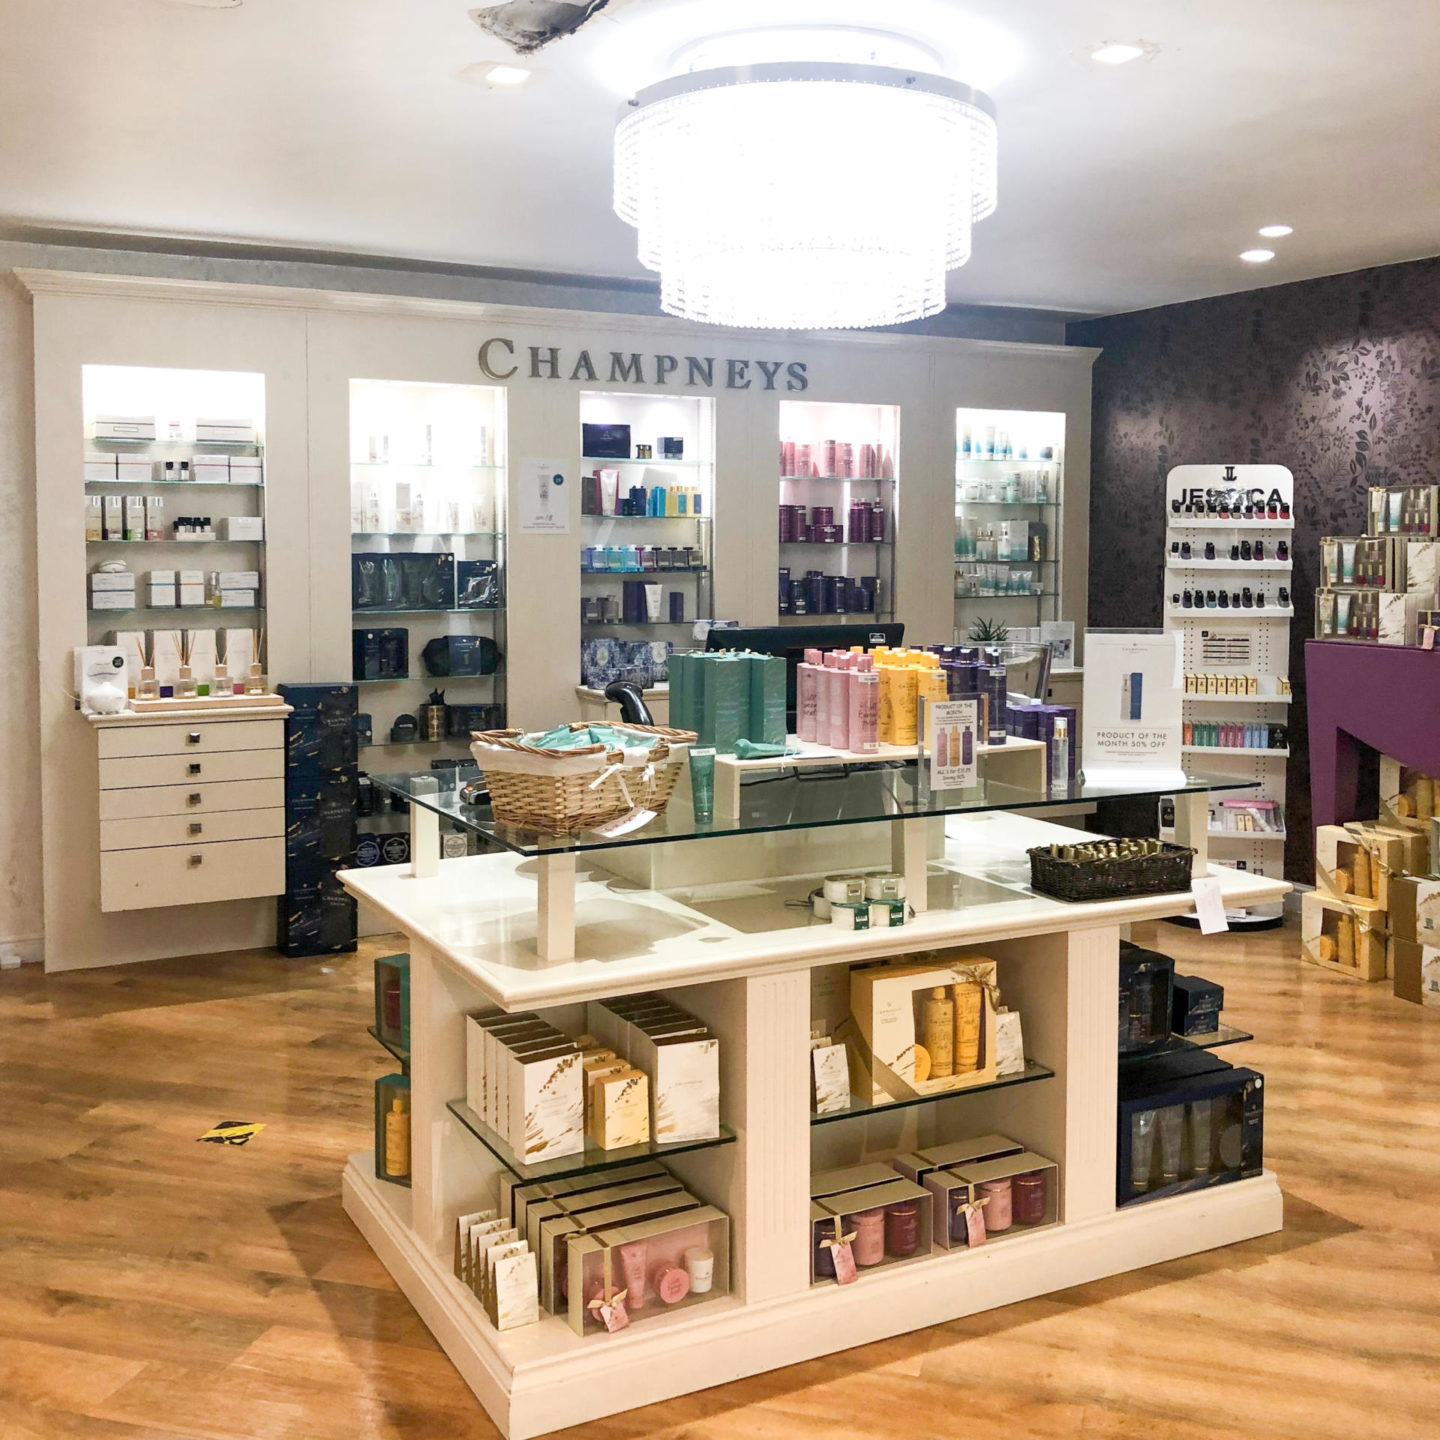 A Valentines Spa Break at Champneys Springs - Rachel Nicole UK Blogger